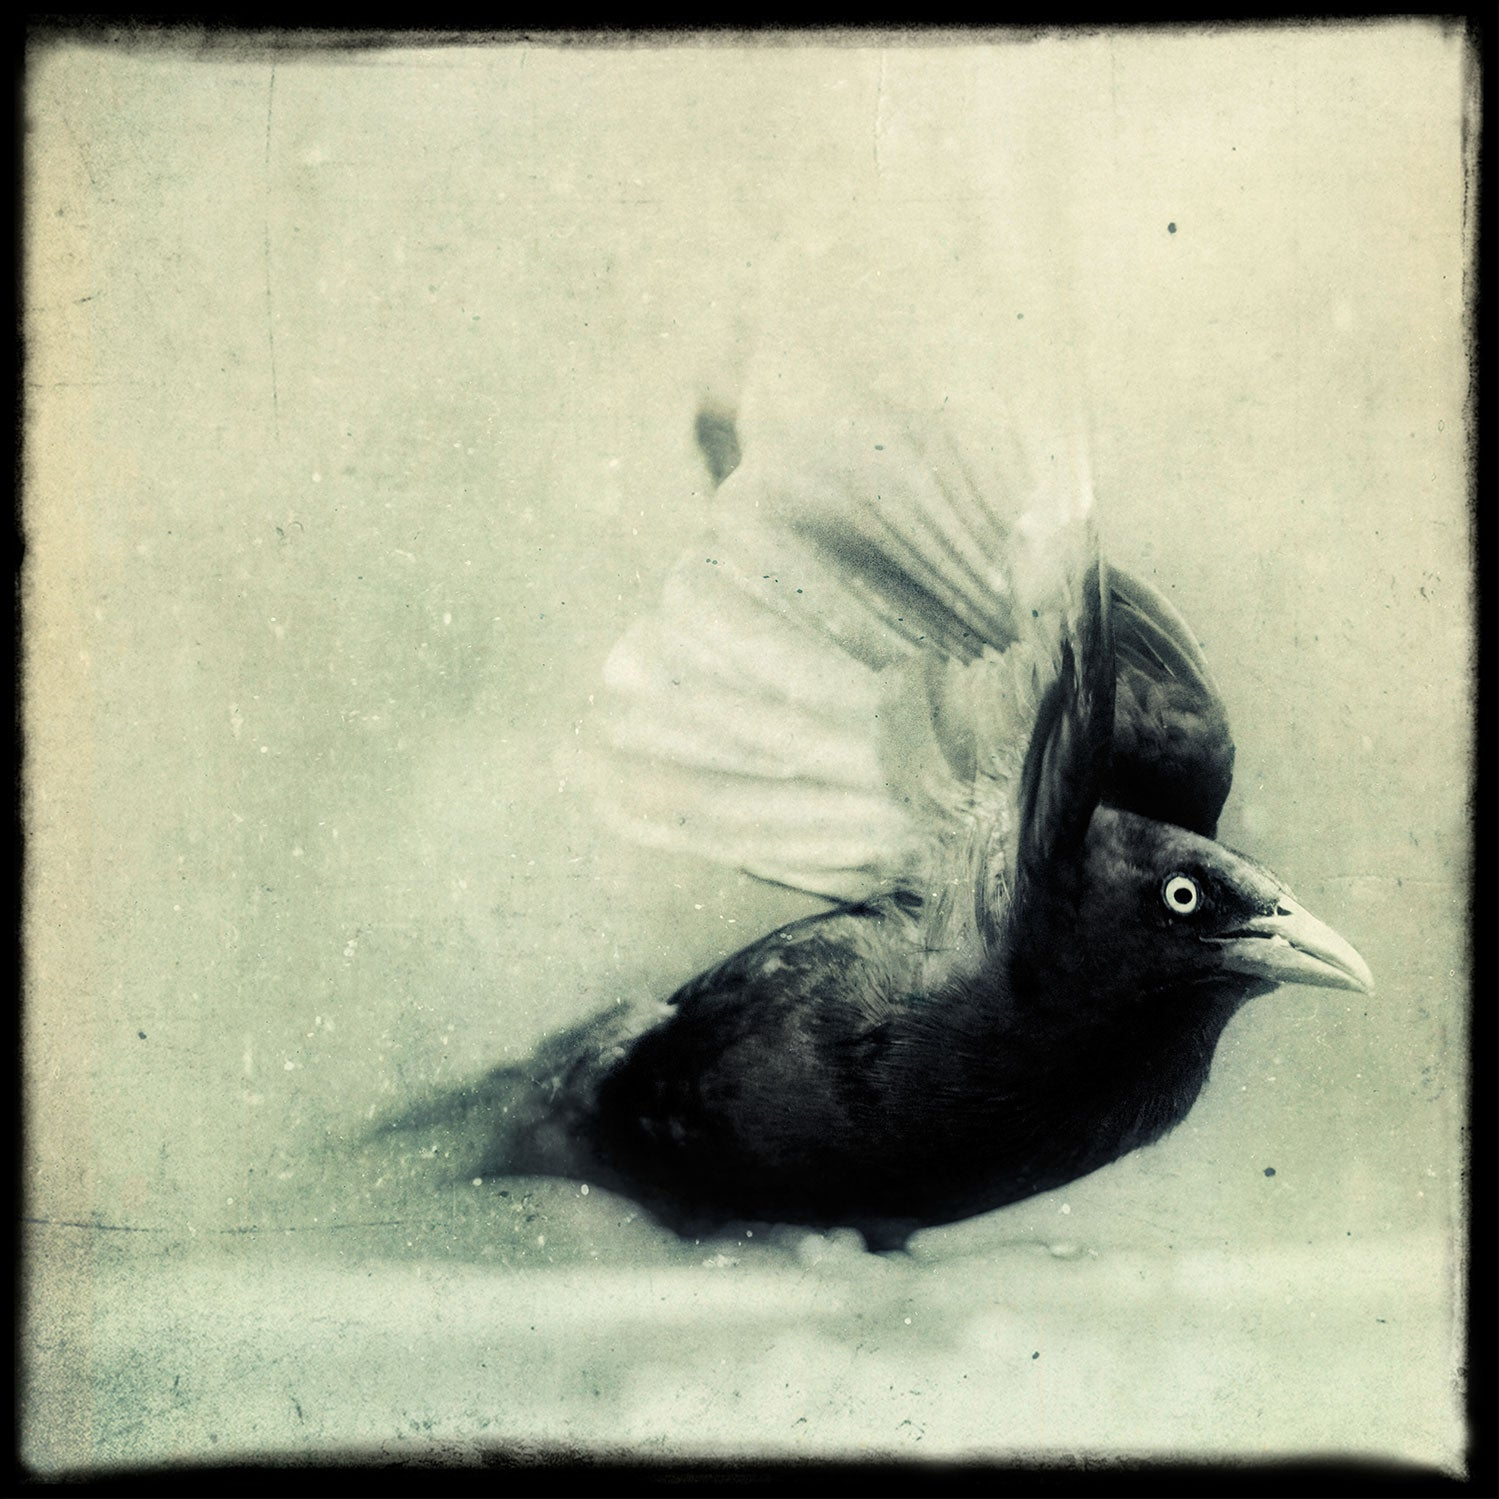 Grackle No. 4